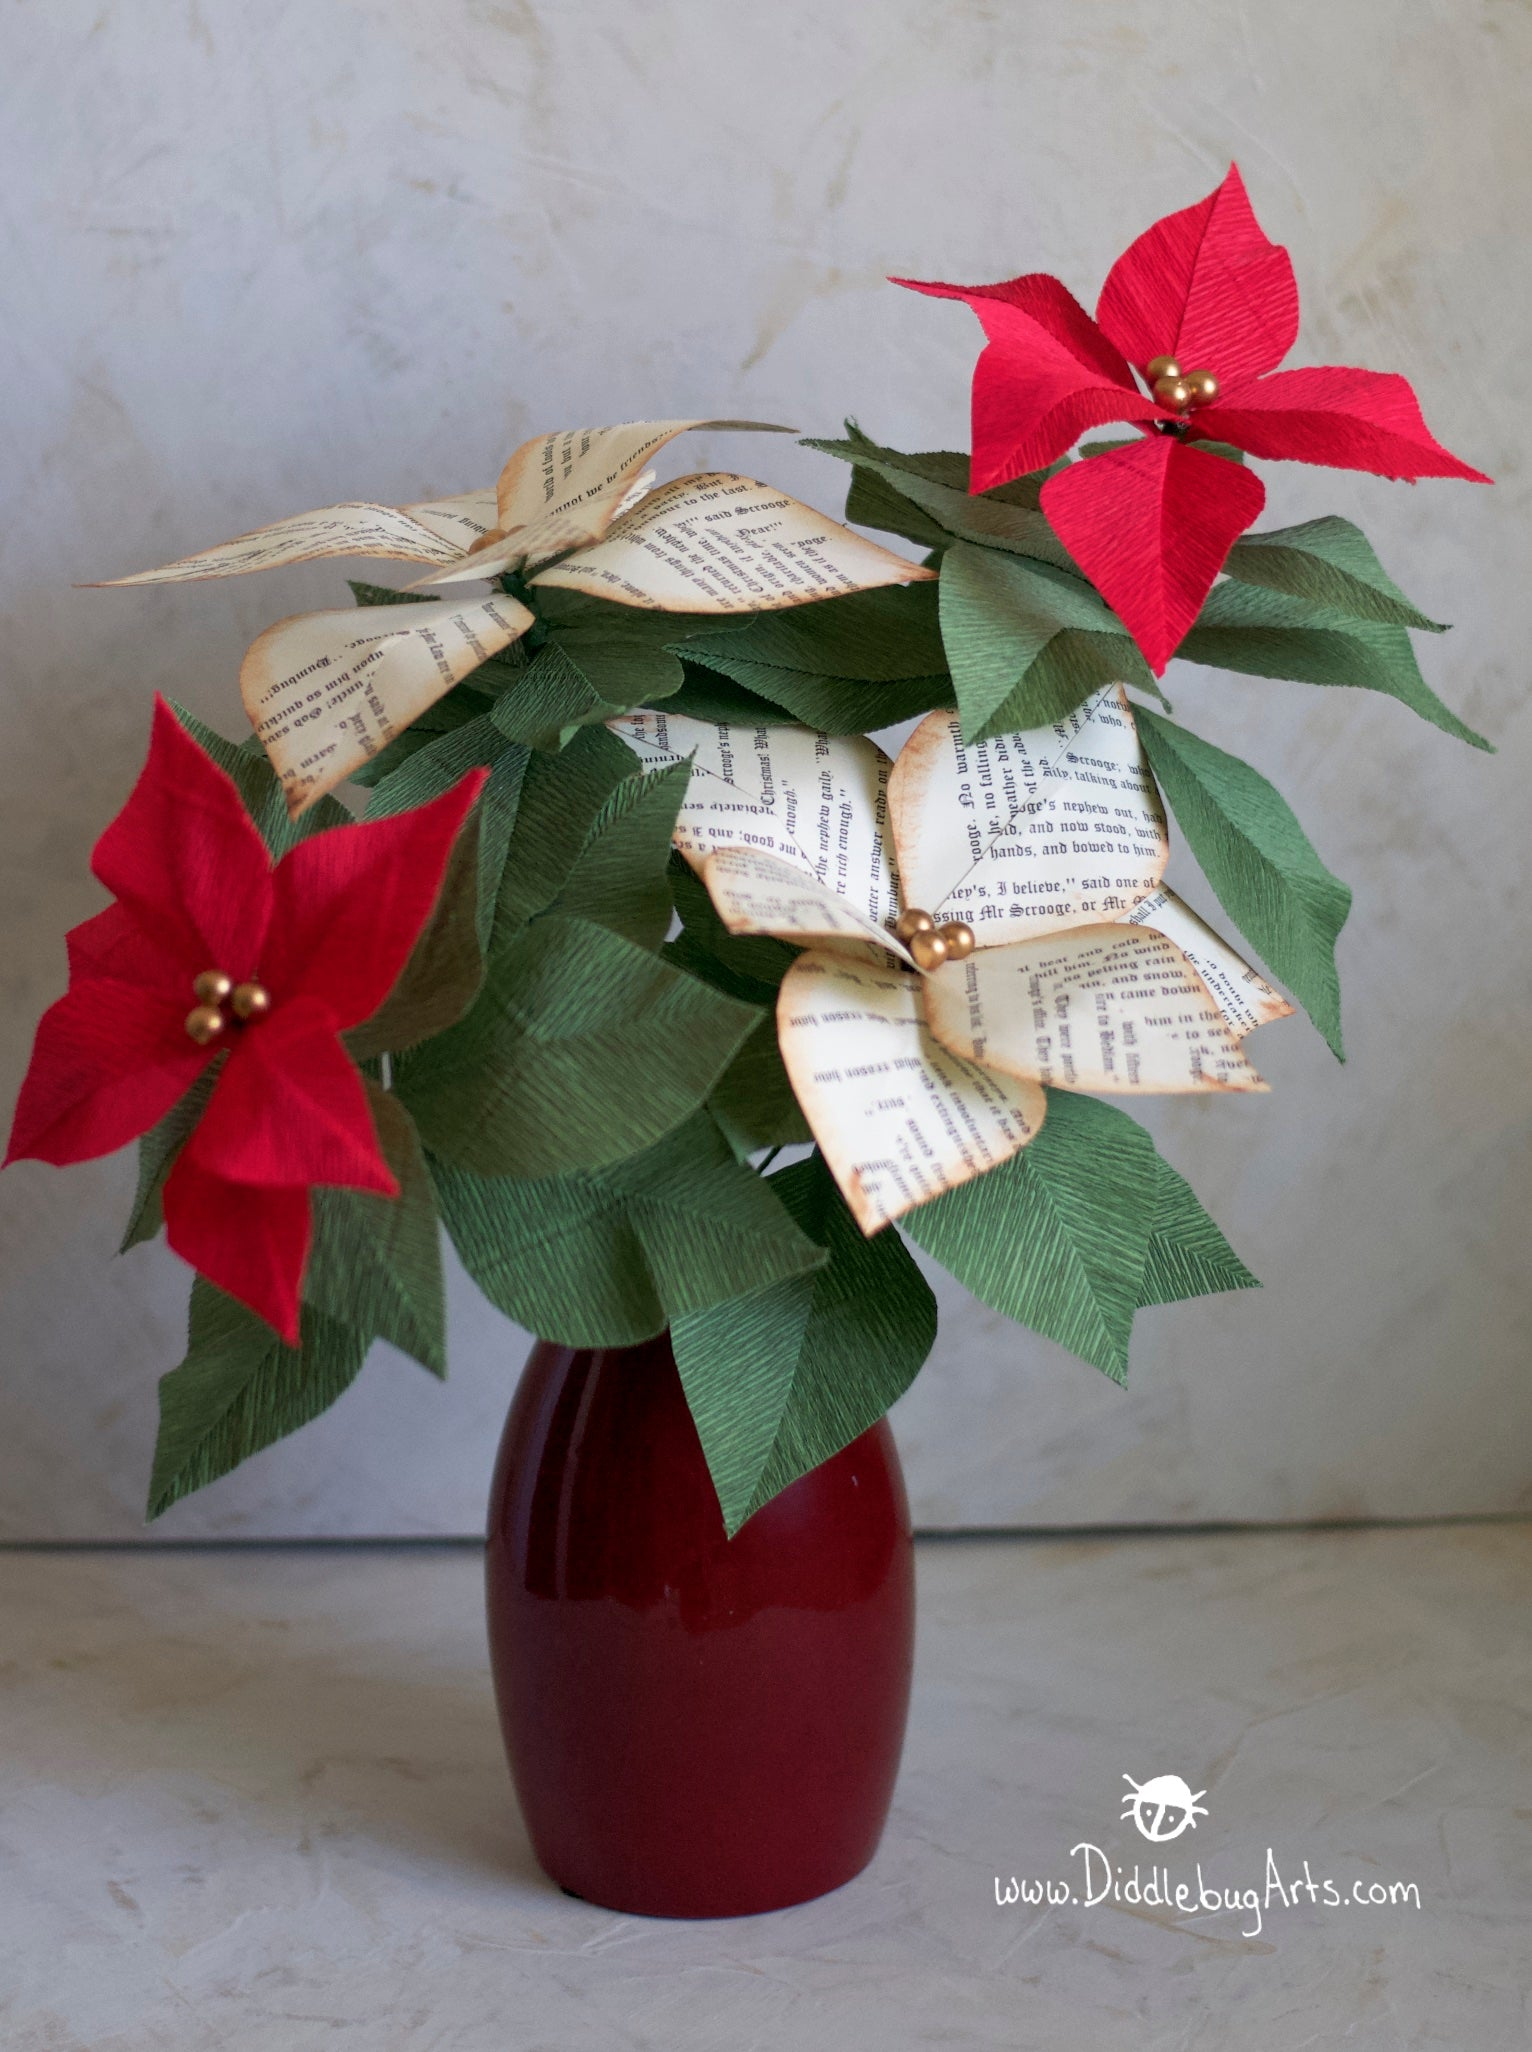 red crepe paper poinsettia plant with some book page poinsettias